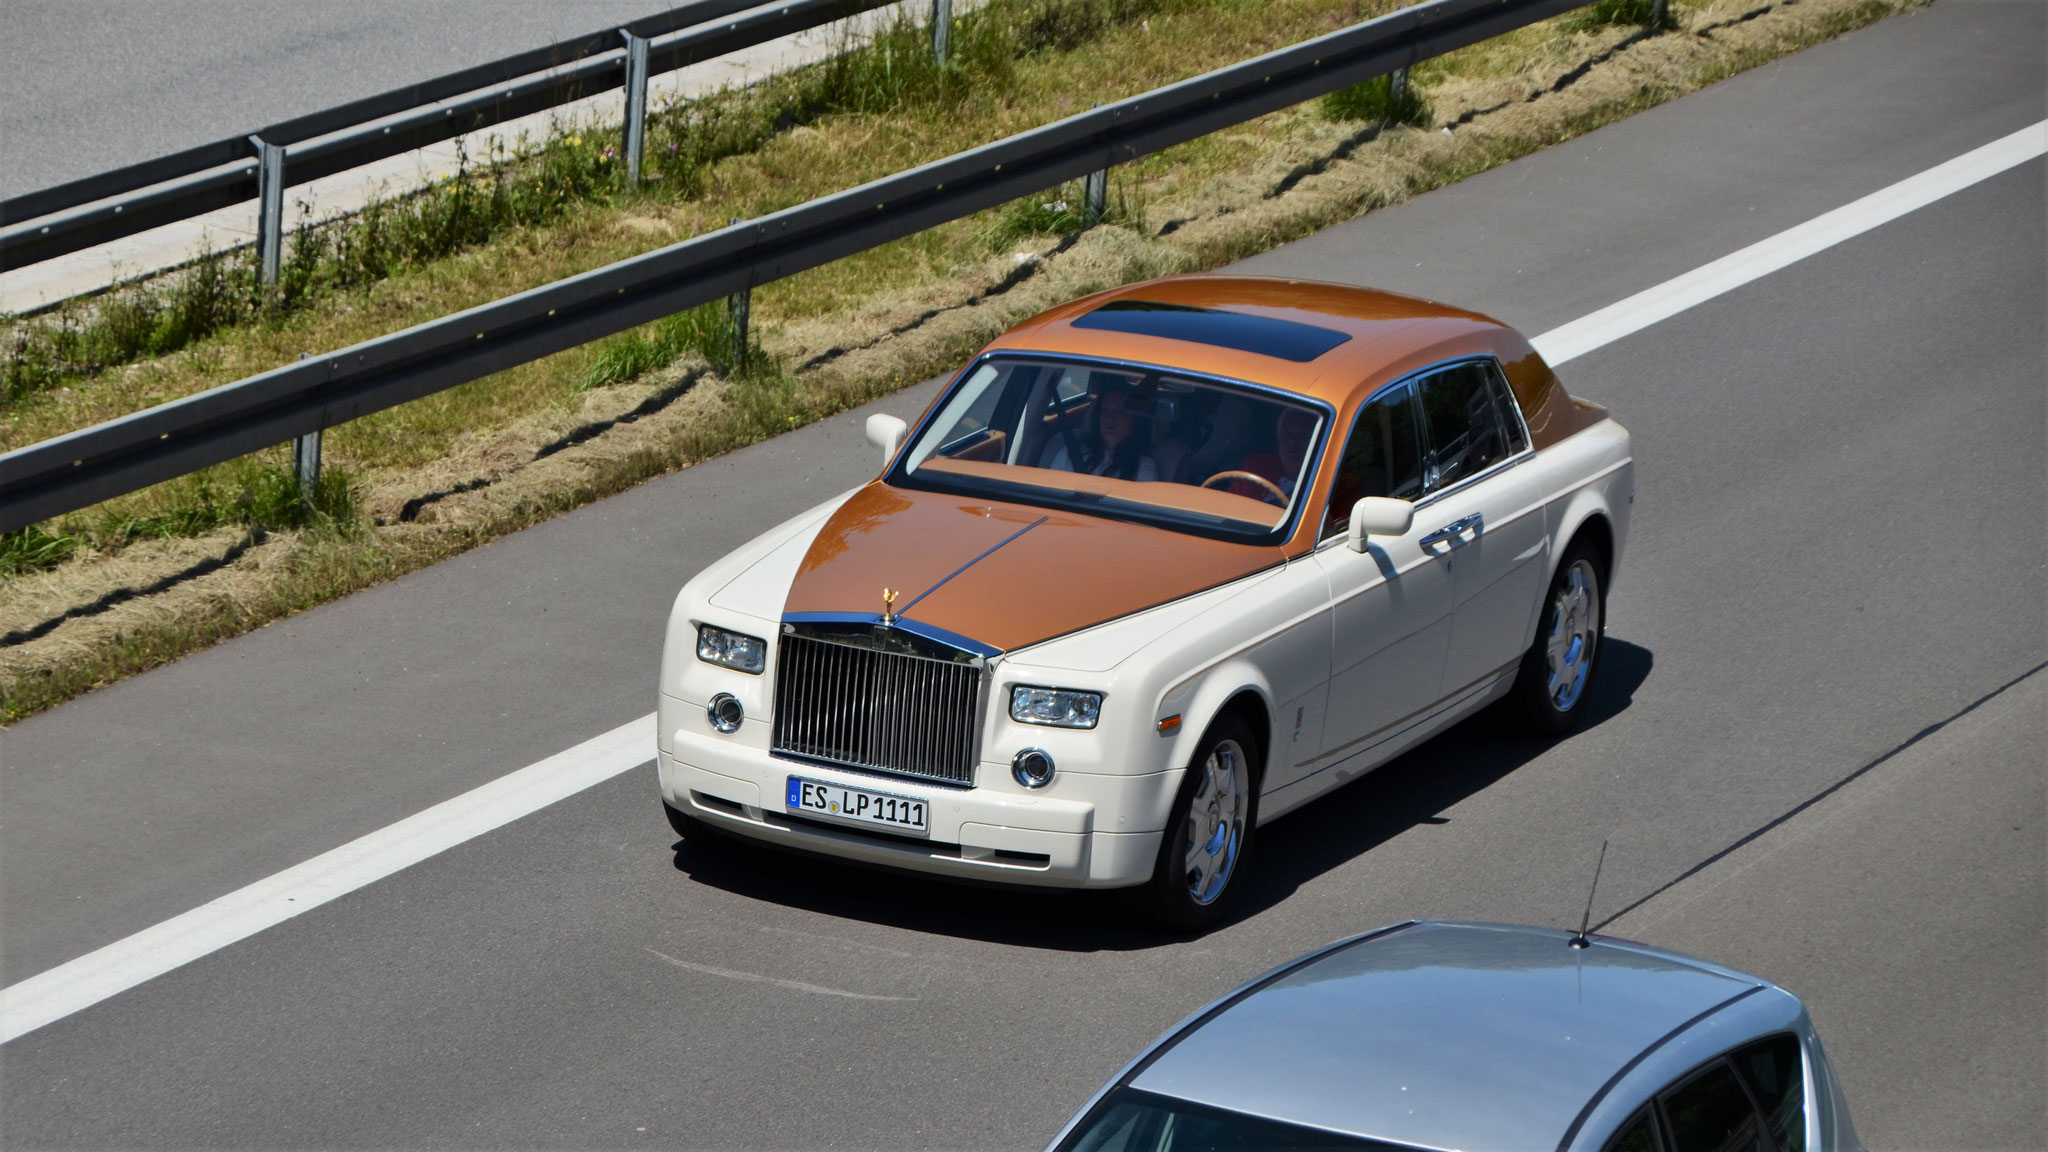 Rolls Royce Phantom - ES-LP-1111